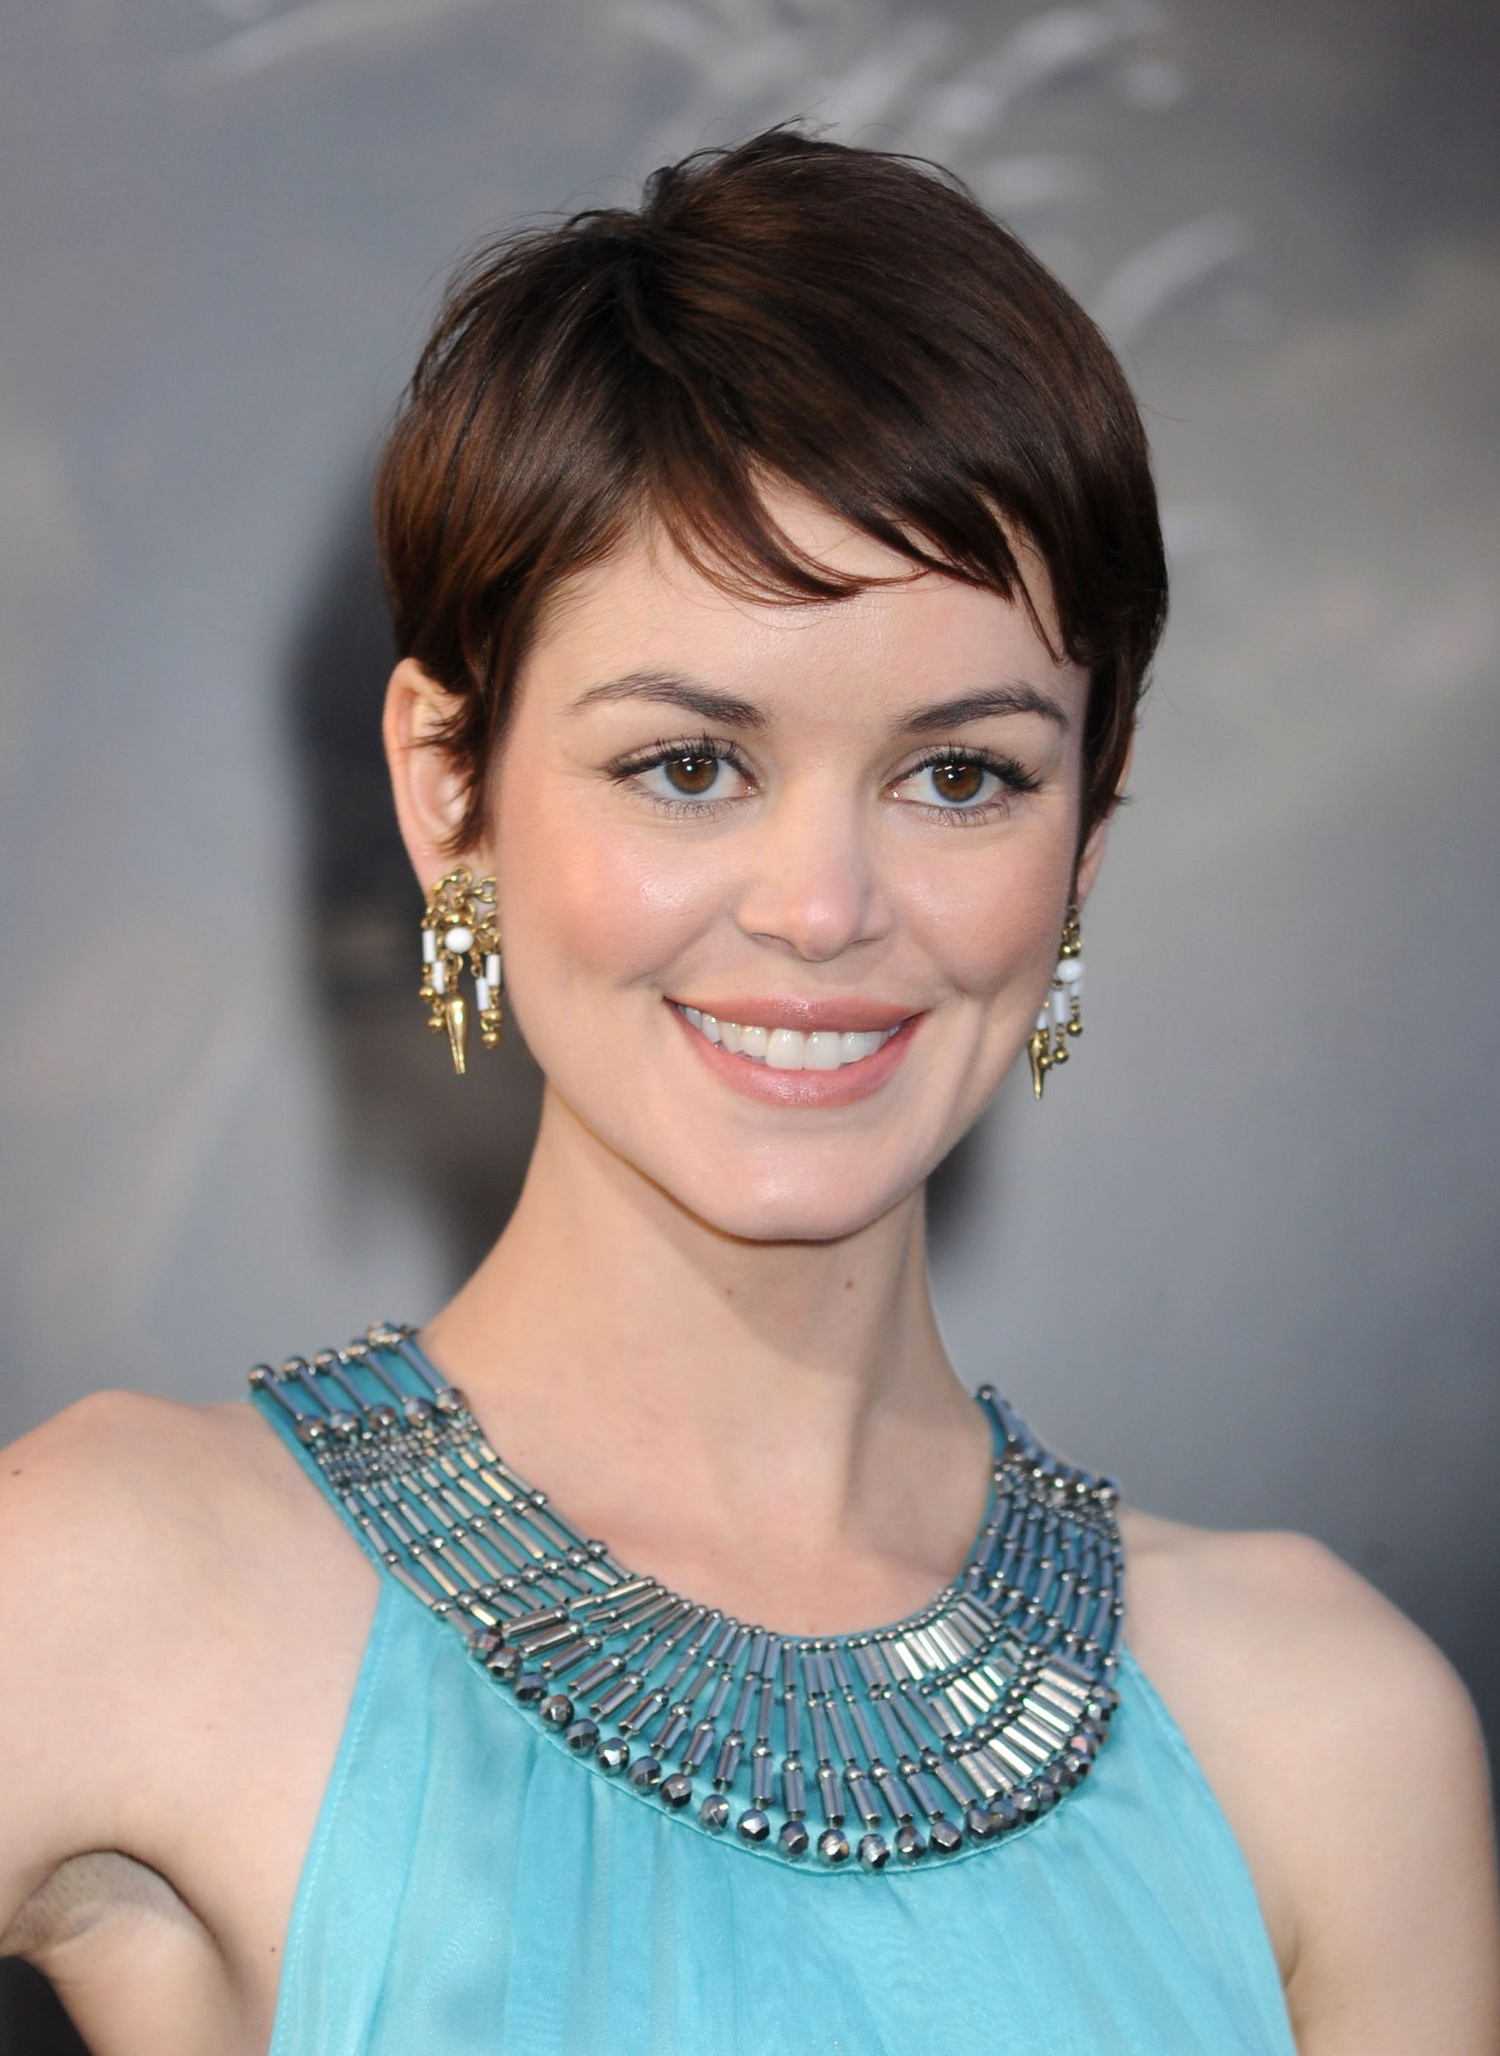 19 Cute Celebrity Haircuts To Consider – Glamour With Short Haircuts Without Bangs (View 21 of 25)